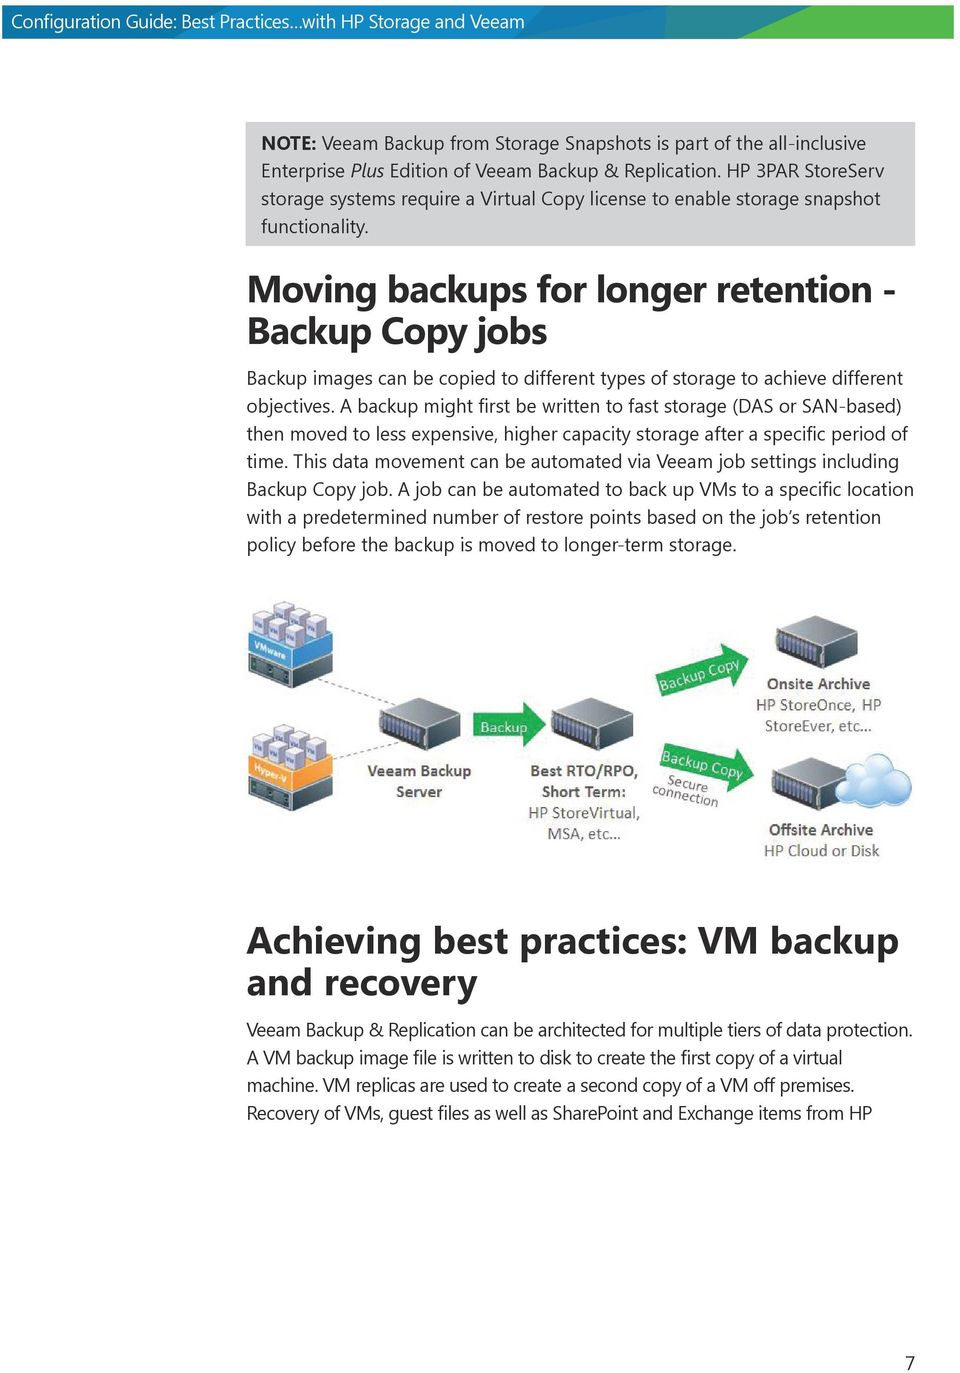 Moving backups for longer retention - Backup Copy jobs Backup images can be copied to different types of storage to achieve different objectives.